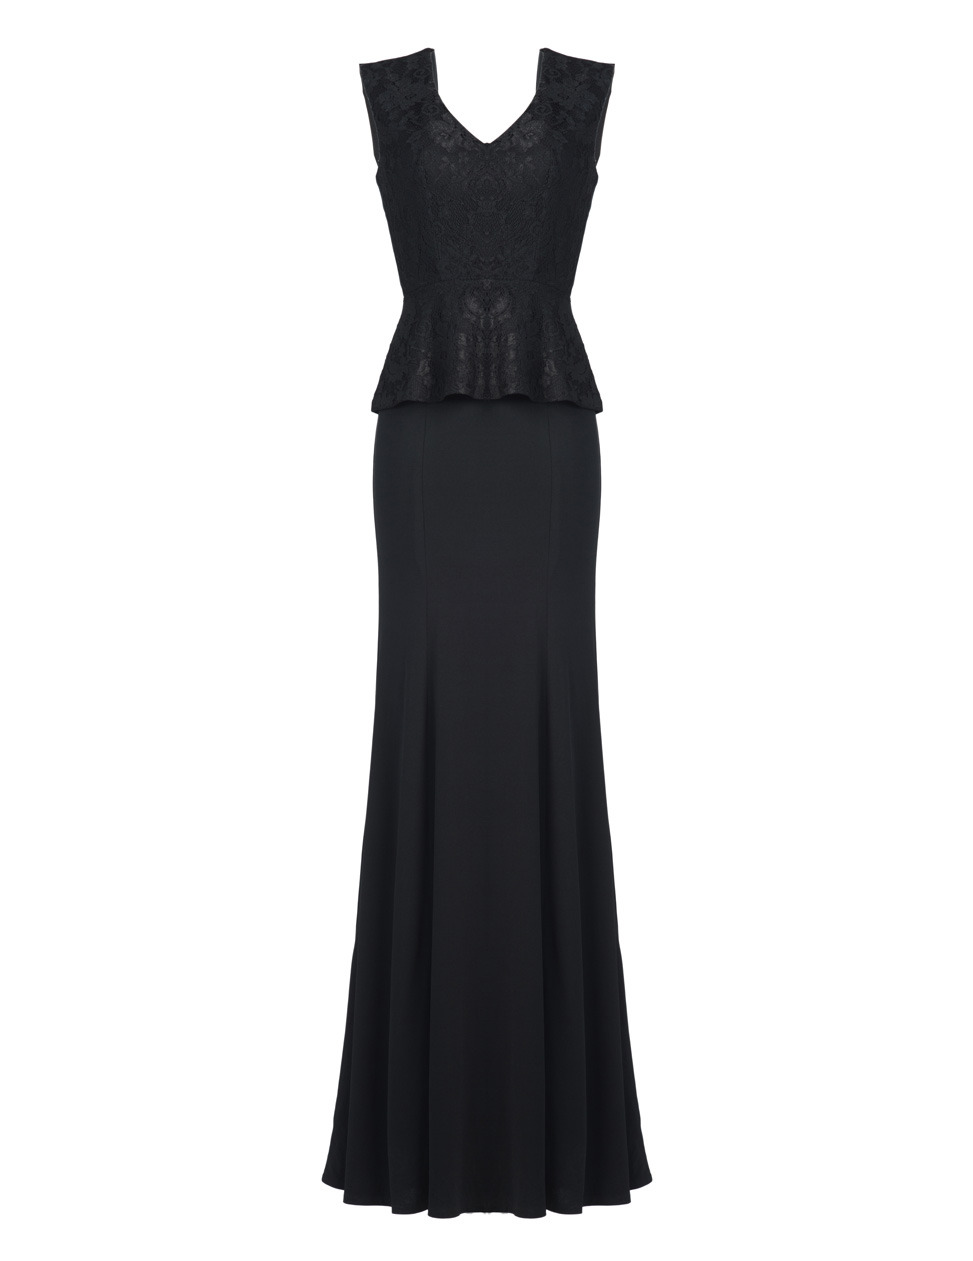 Darshi Black Slim Long Dress - neckline: low v-neck; pattern: plain; sleeve style: sleeveless; style: maxi dress; waist detail: peplum waist detail; predominant colour: black; occasions: evening, occasion; length: floor length; fit: body skimming; fibres: polyester/polyamide - stretch; sleeve length: sleeveless; pattern type: fabric; texture group: other - light to midweight; trends: gothic romance; season: a/w 2013